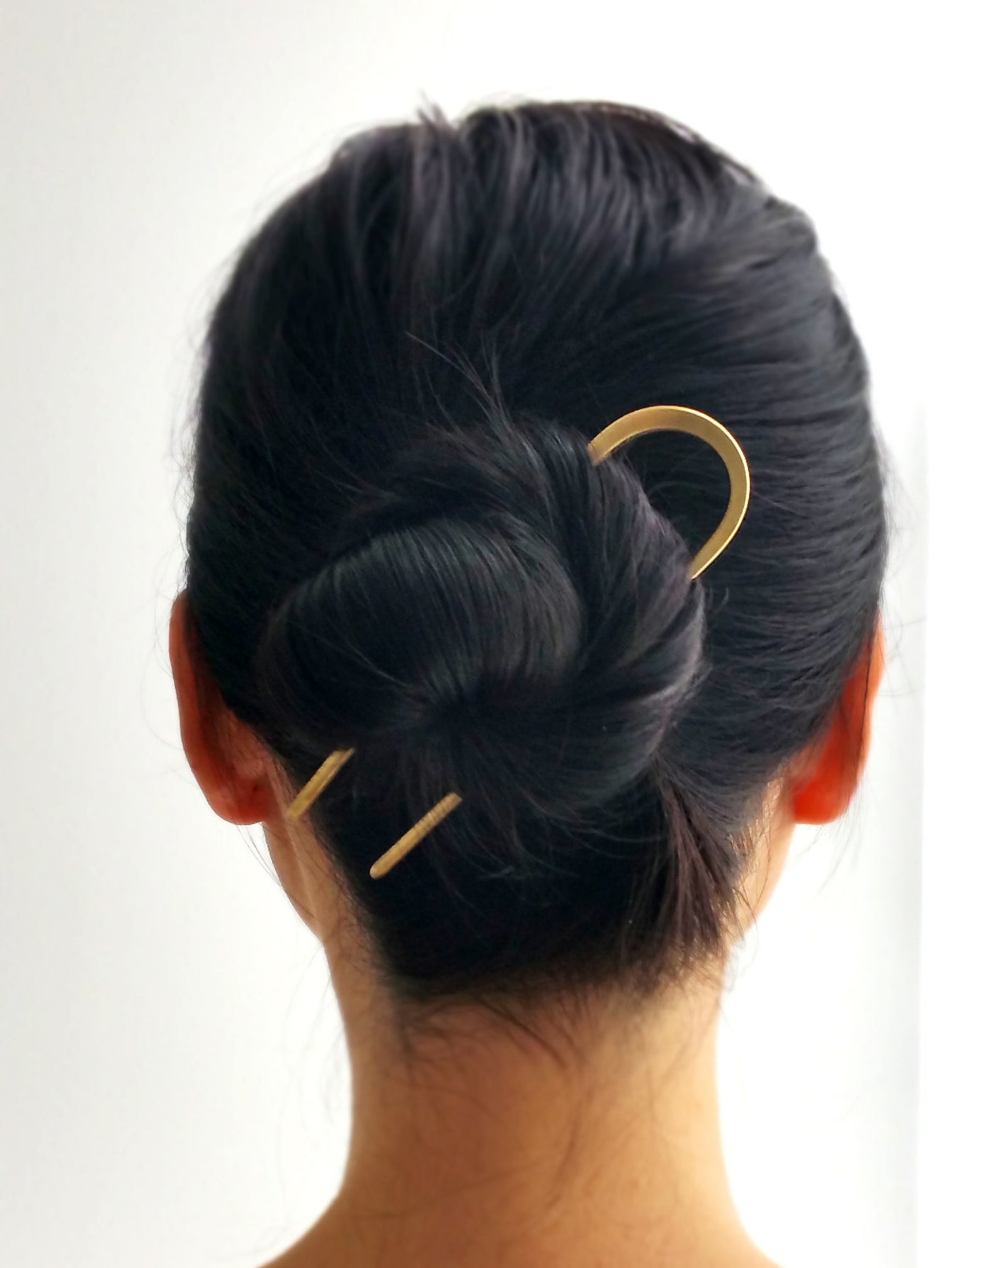 FLATWEAR BUN PIN | hair pin, metal hair pin, gold hair pin, hair stick, hair accessories, minimalist, hair clip |